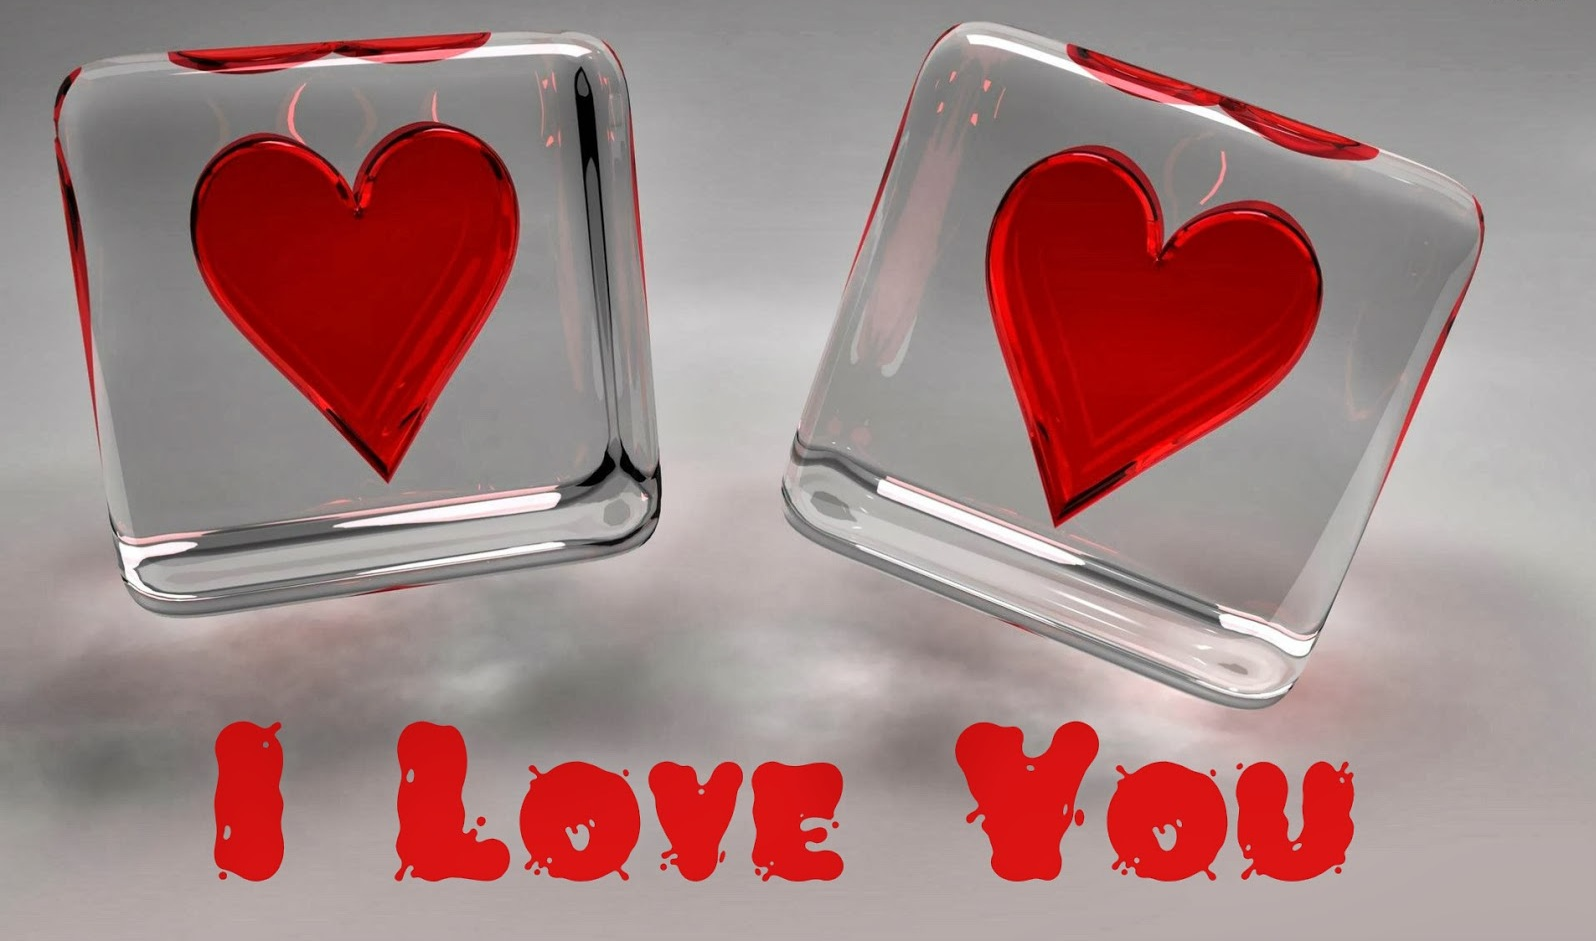 Wallpaper I Love You Hd : I Love You Wallpapers, Pictures, Images